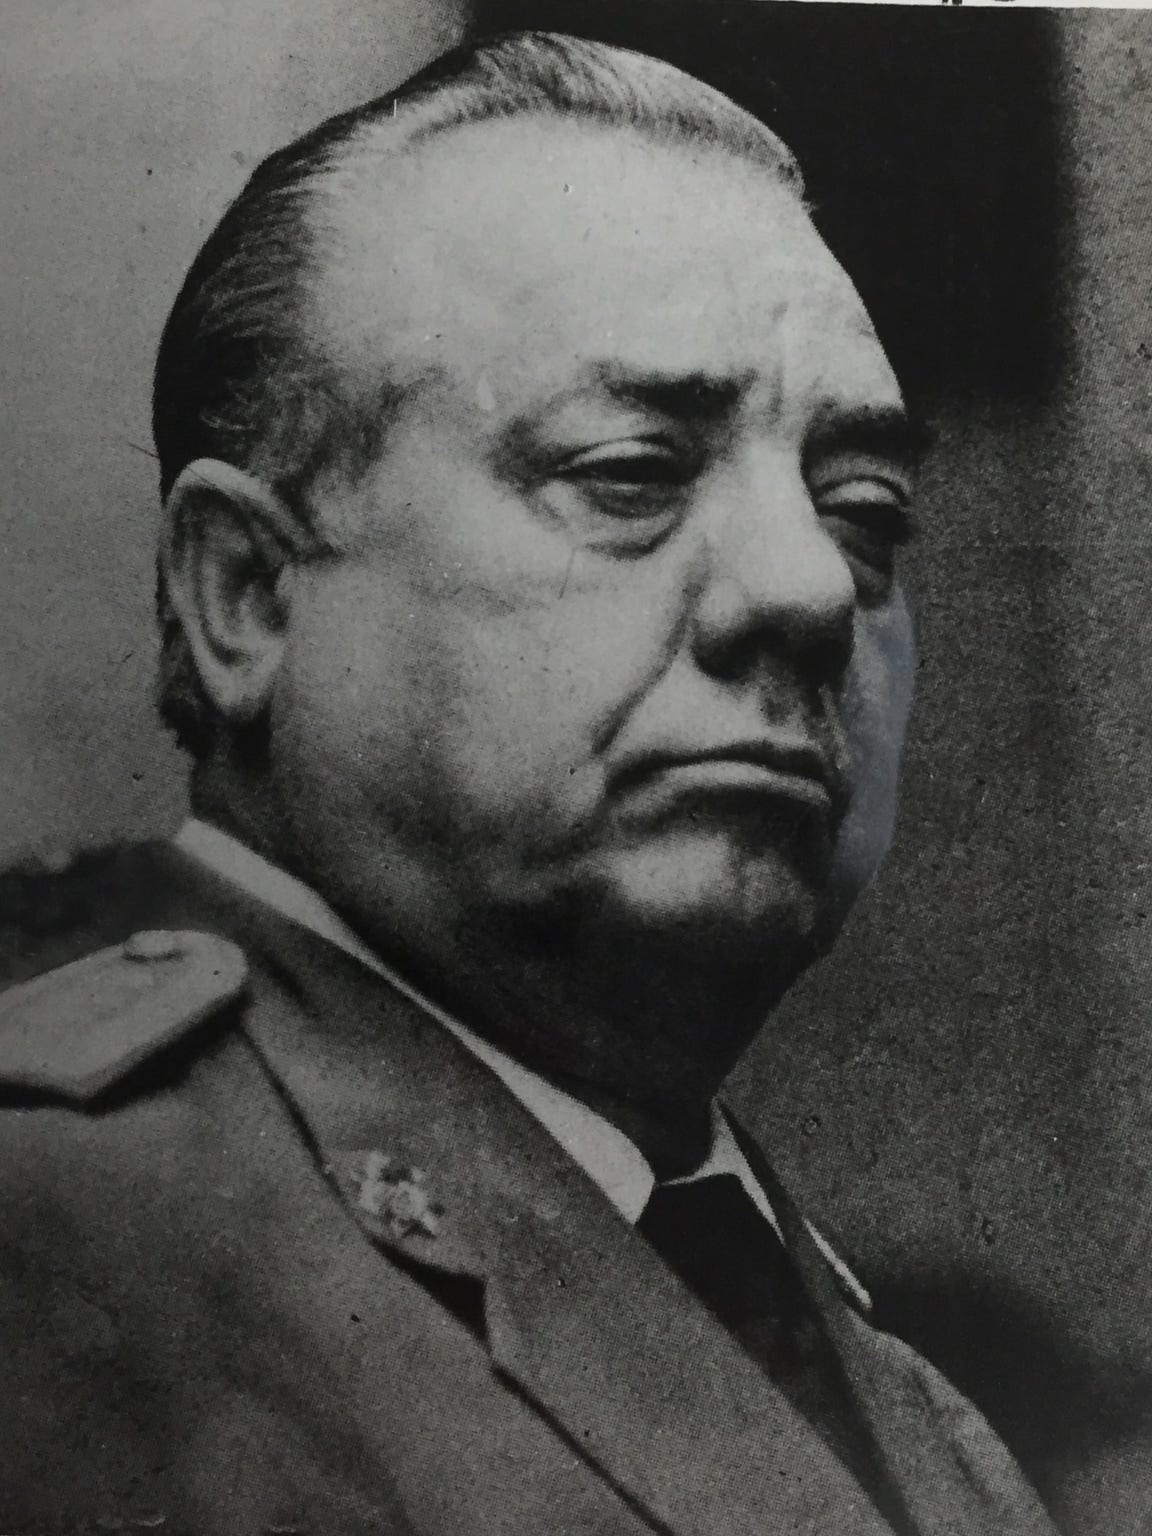 """Arturo Durazo Moreno, better known as """"El Negro,"""" reputedly built a fortune on extortion and bribery during his six years as Mexico City's police chief in the late 1970s. He died in 2000."""